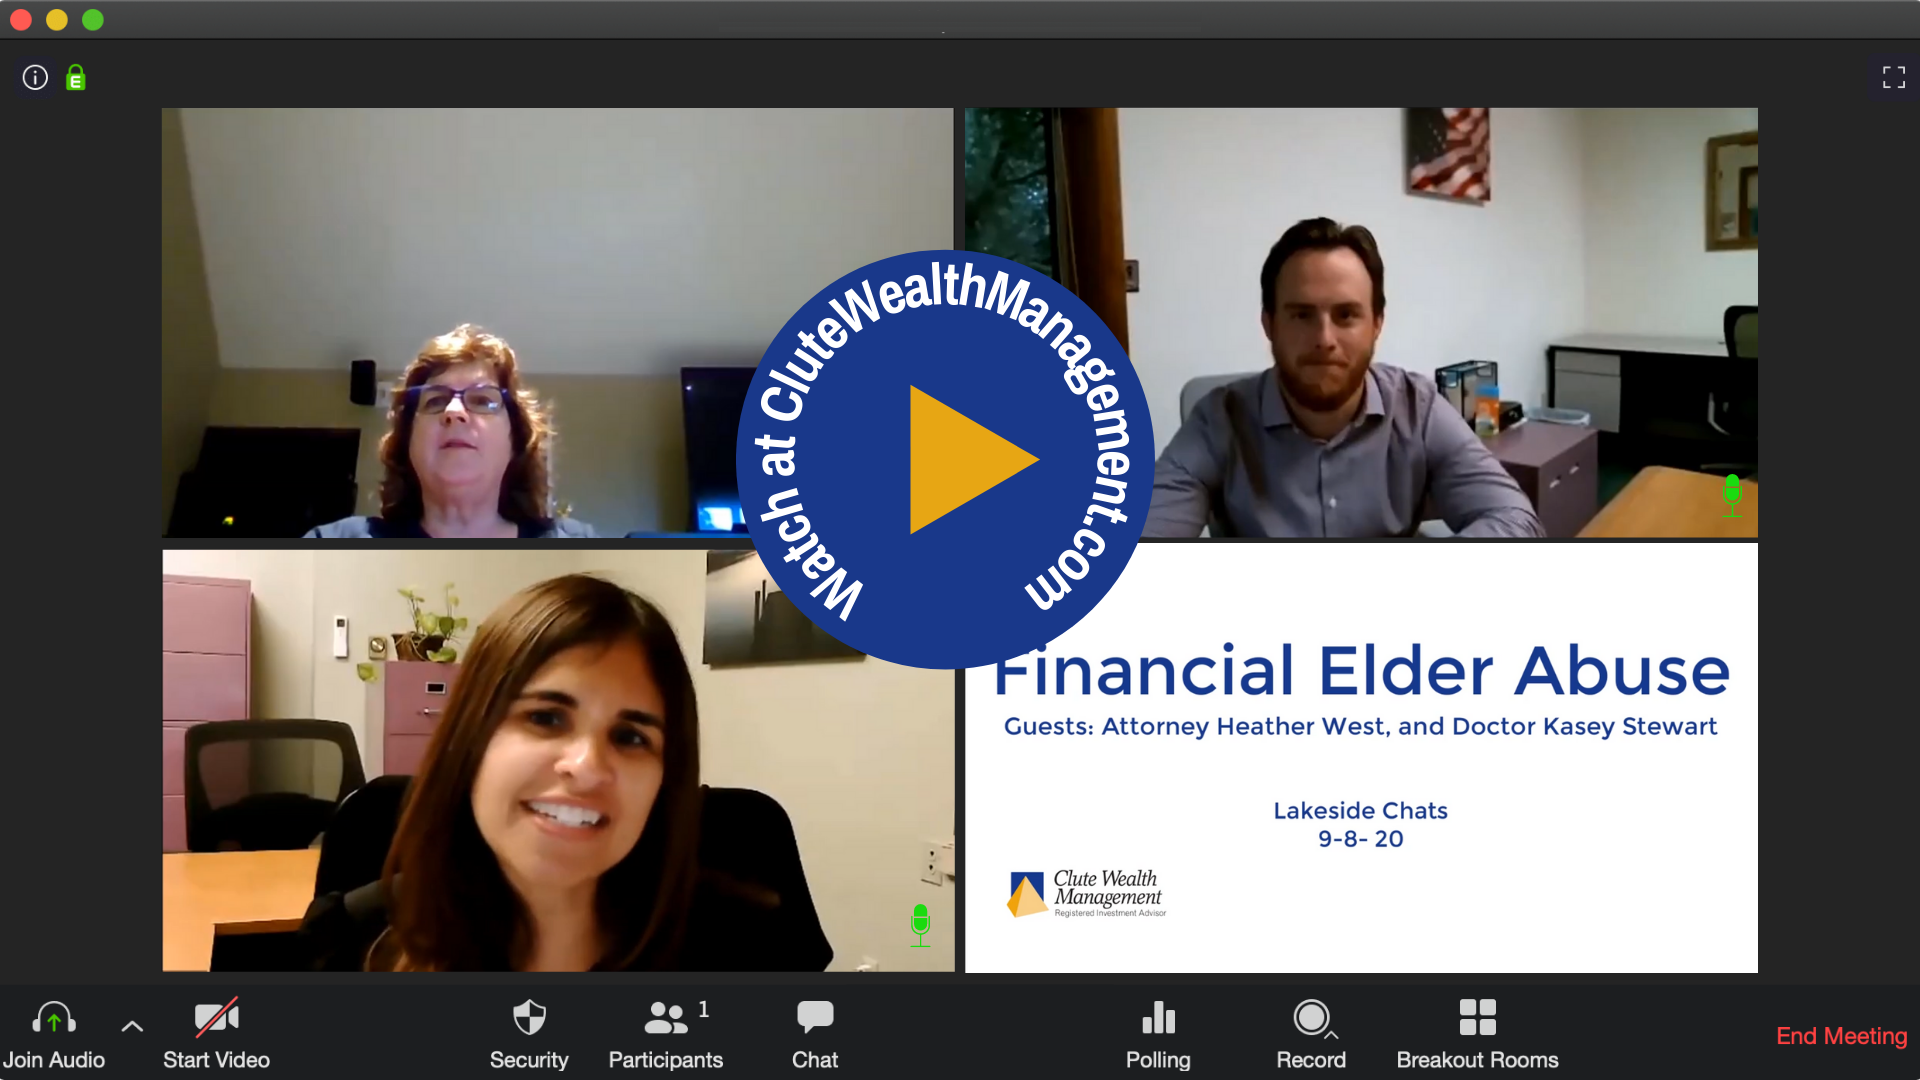 Video Chat Window with Clute Wealth Management Advisors Watch at CluteWealthManagement.com